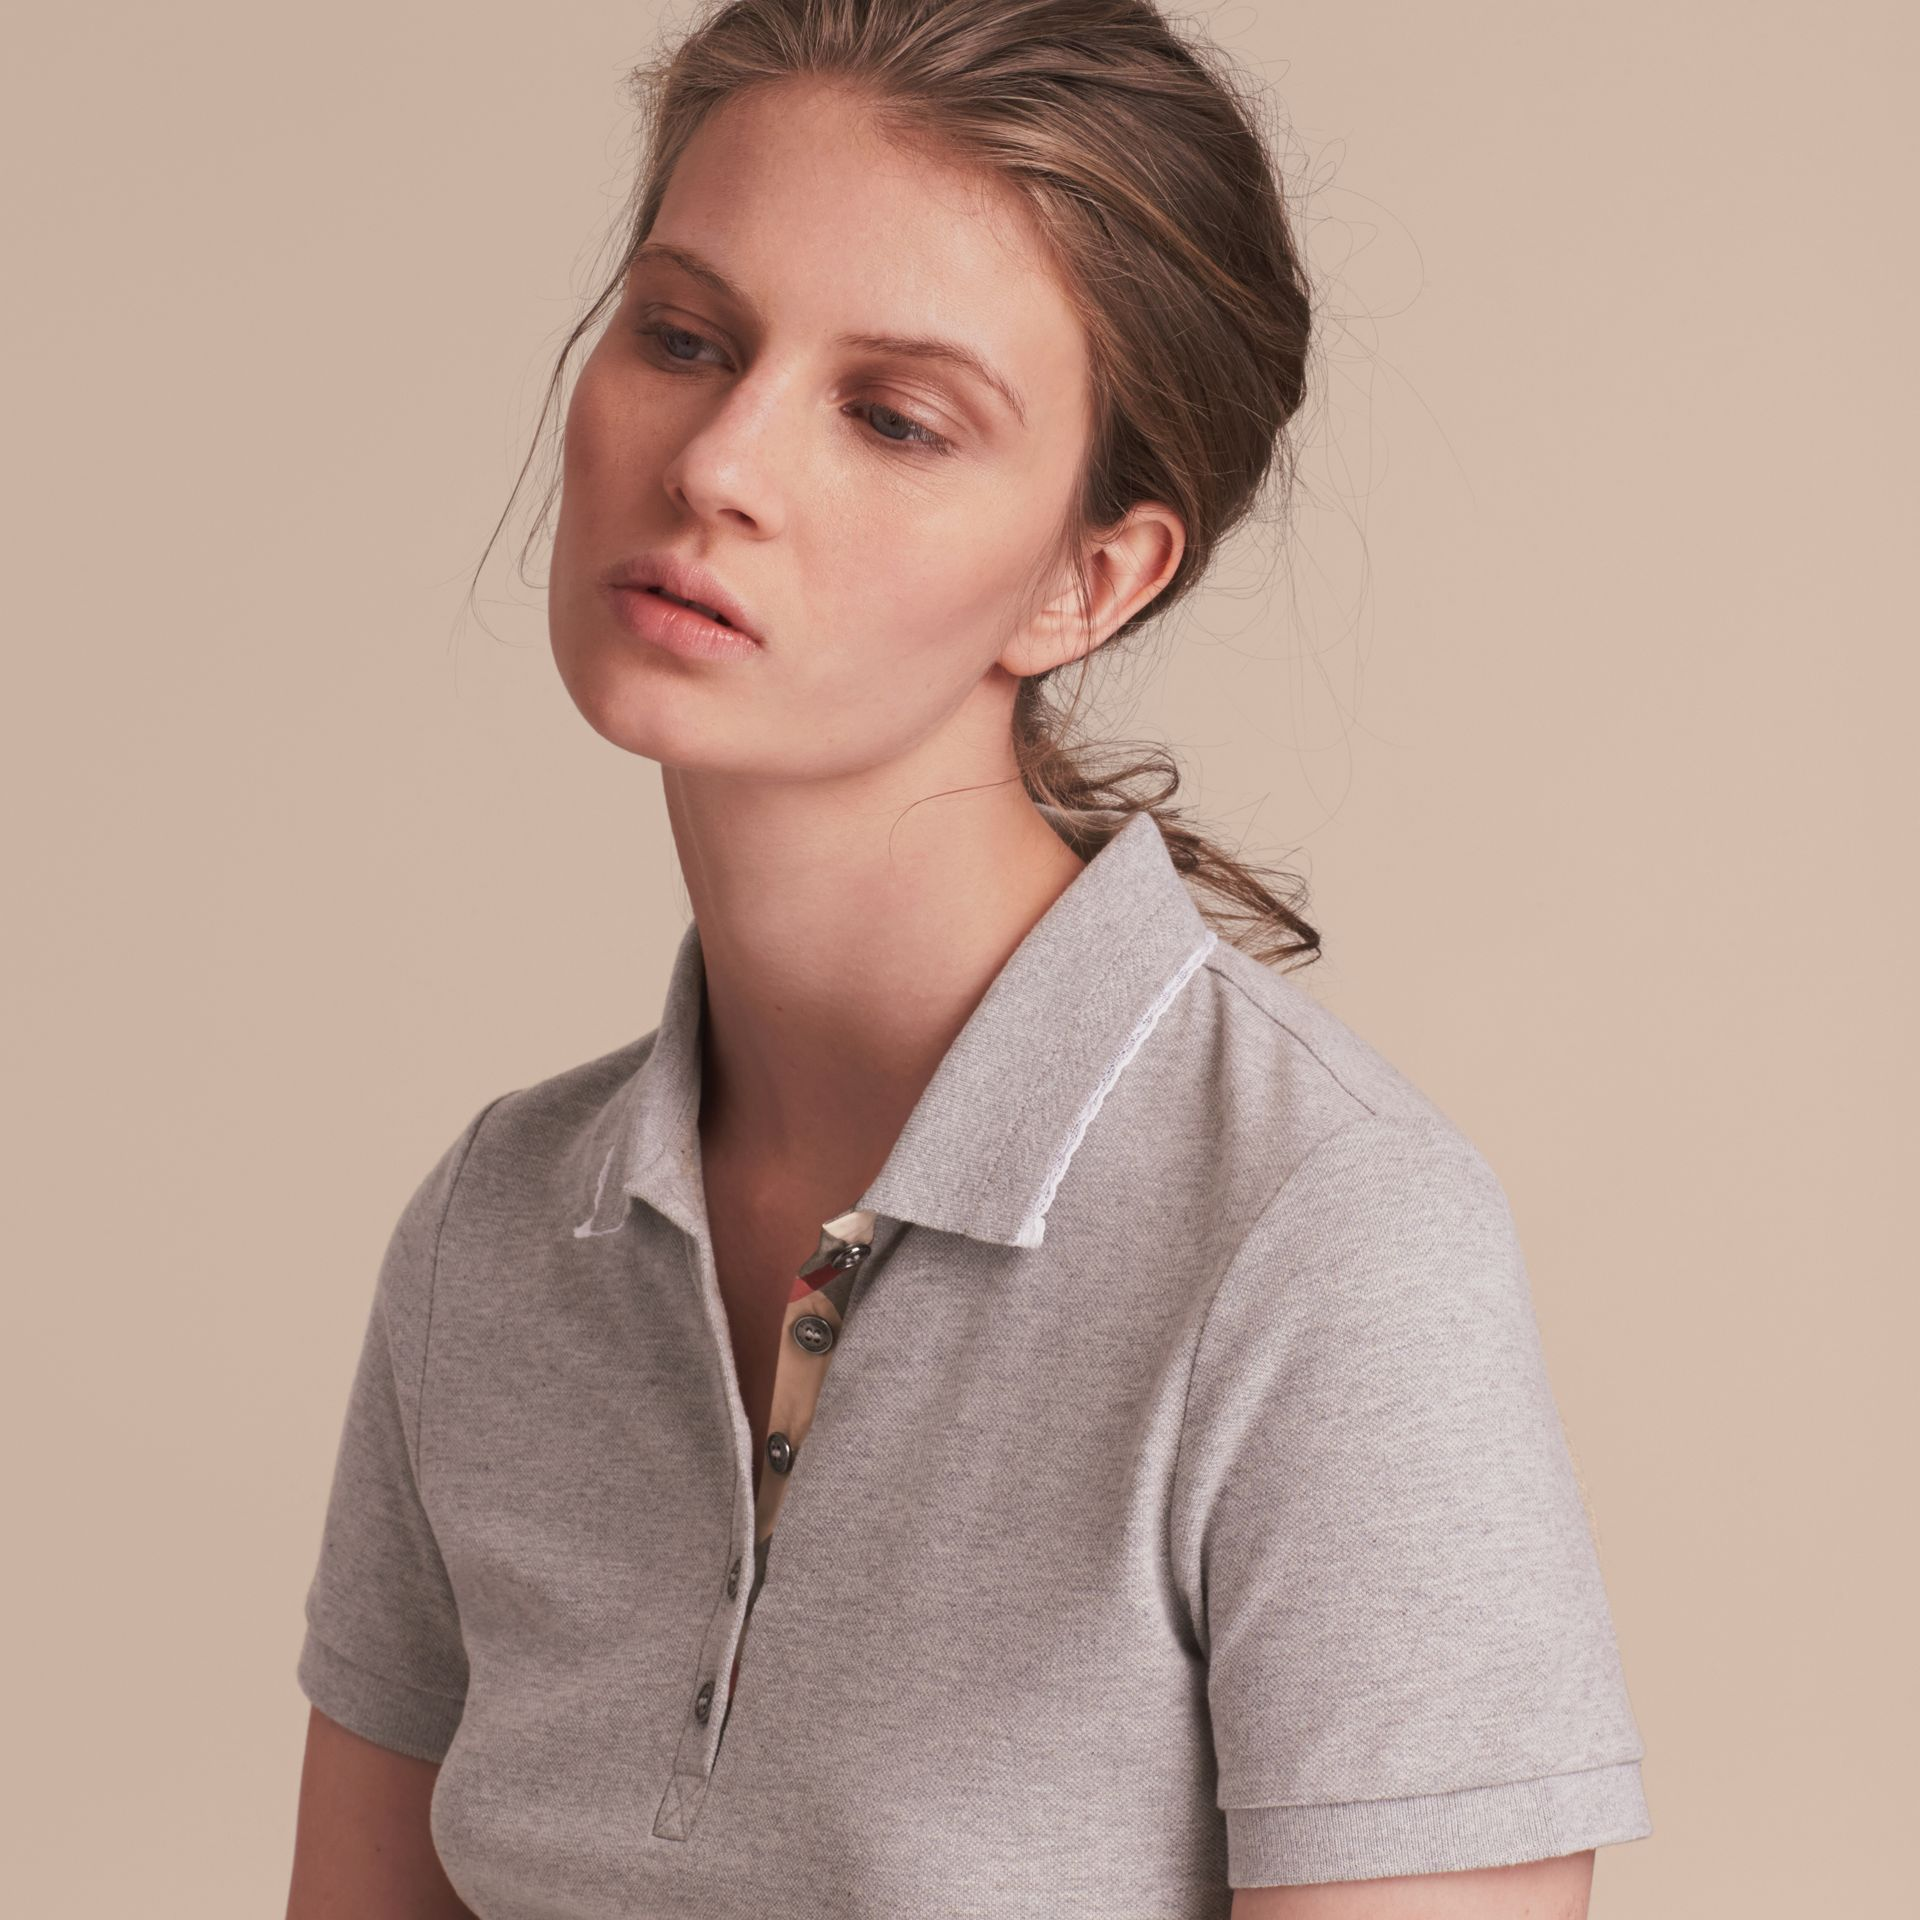 Lace Trim Cotton Blend Polo Shirt with Check Detail in Pale Grey Melange - Women | Burberry Hong Kong - gallery image 5